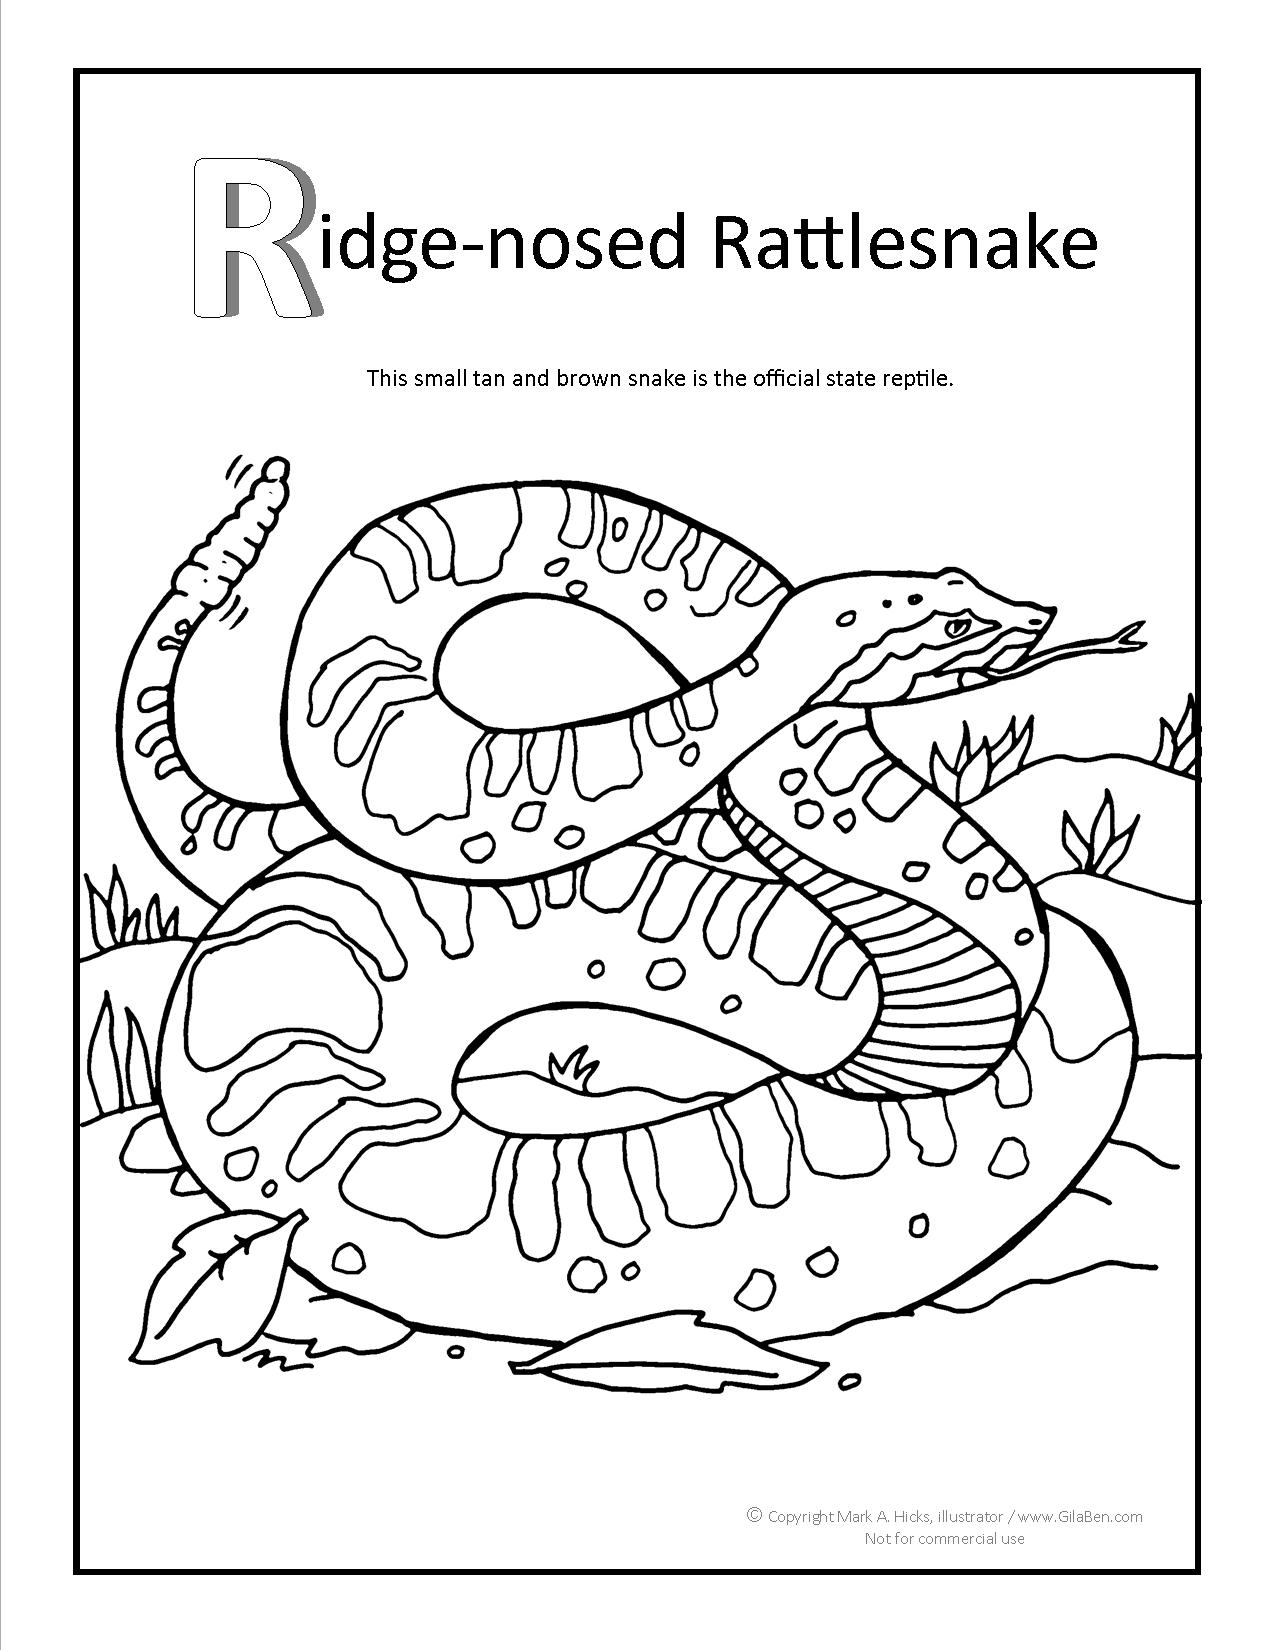 Rattlesnake coloring pages coloring pages for Western diamondback rattlesnake coloring pages